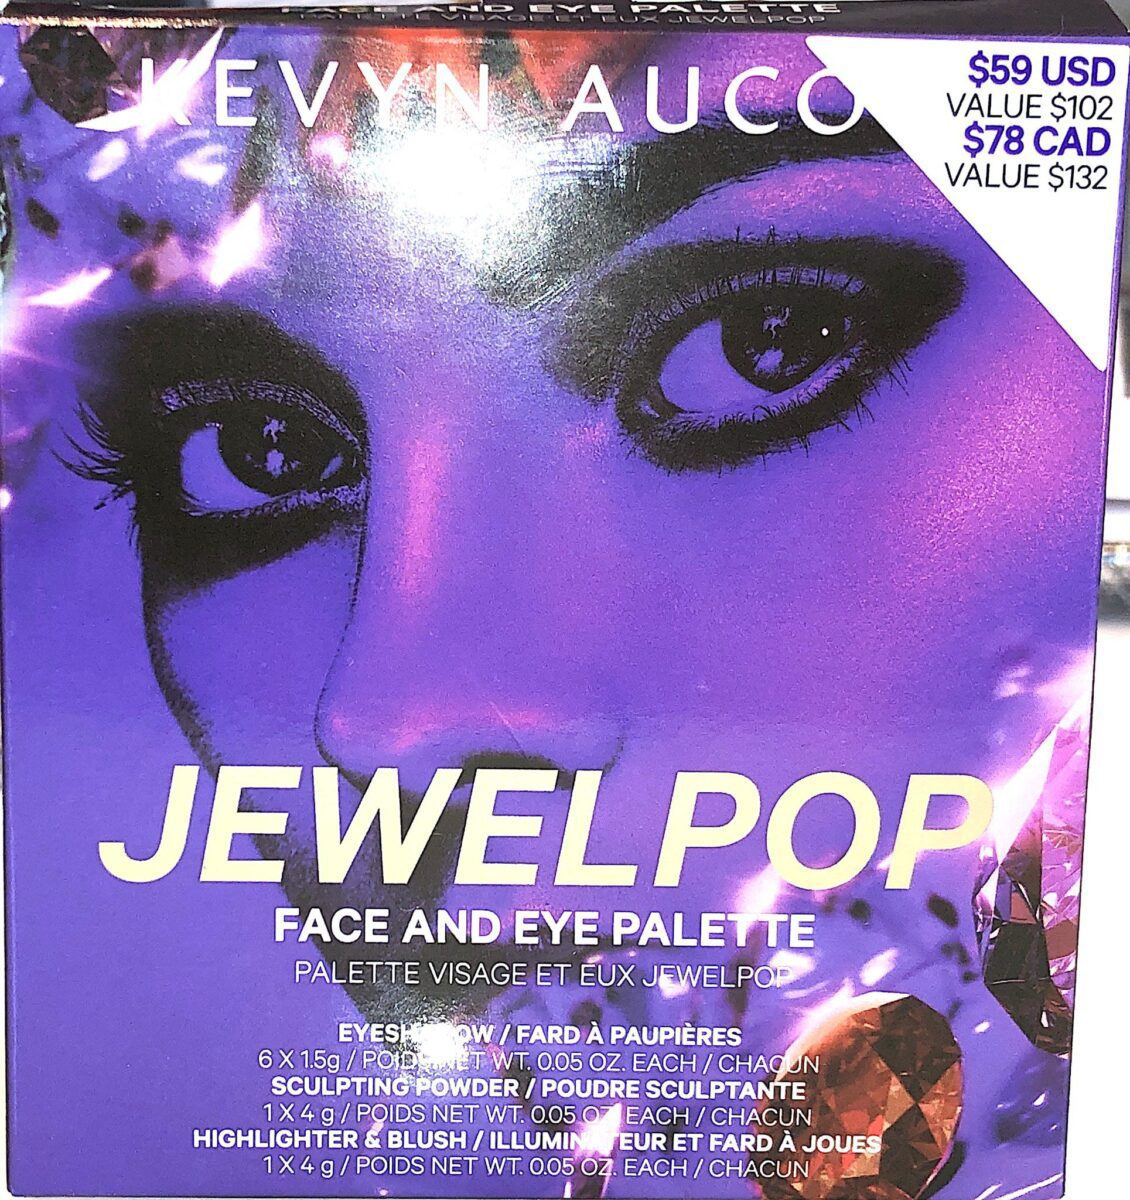 THE OUTER PACKAGING FOR THE KEVYN AUCOIN JEWEL POP PALETTE FOR FACE AND EYES